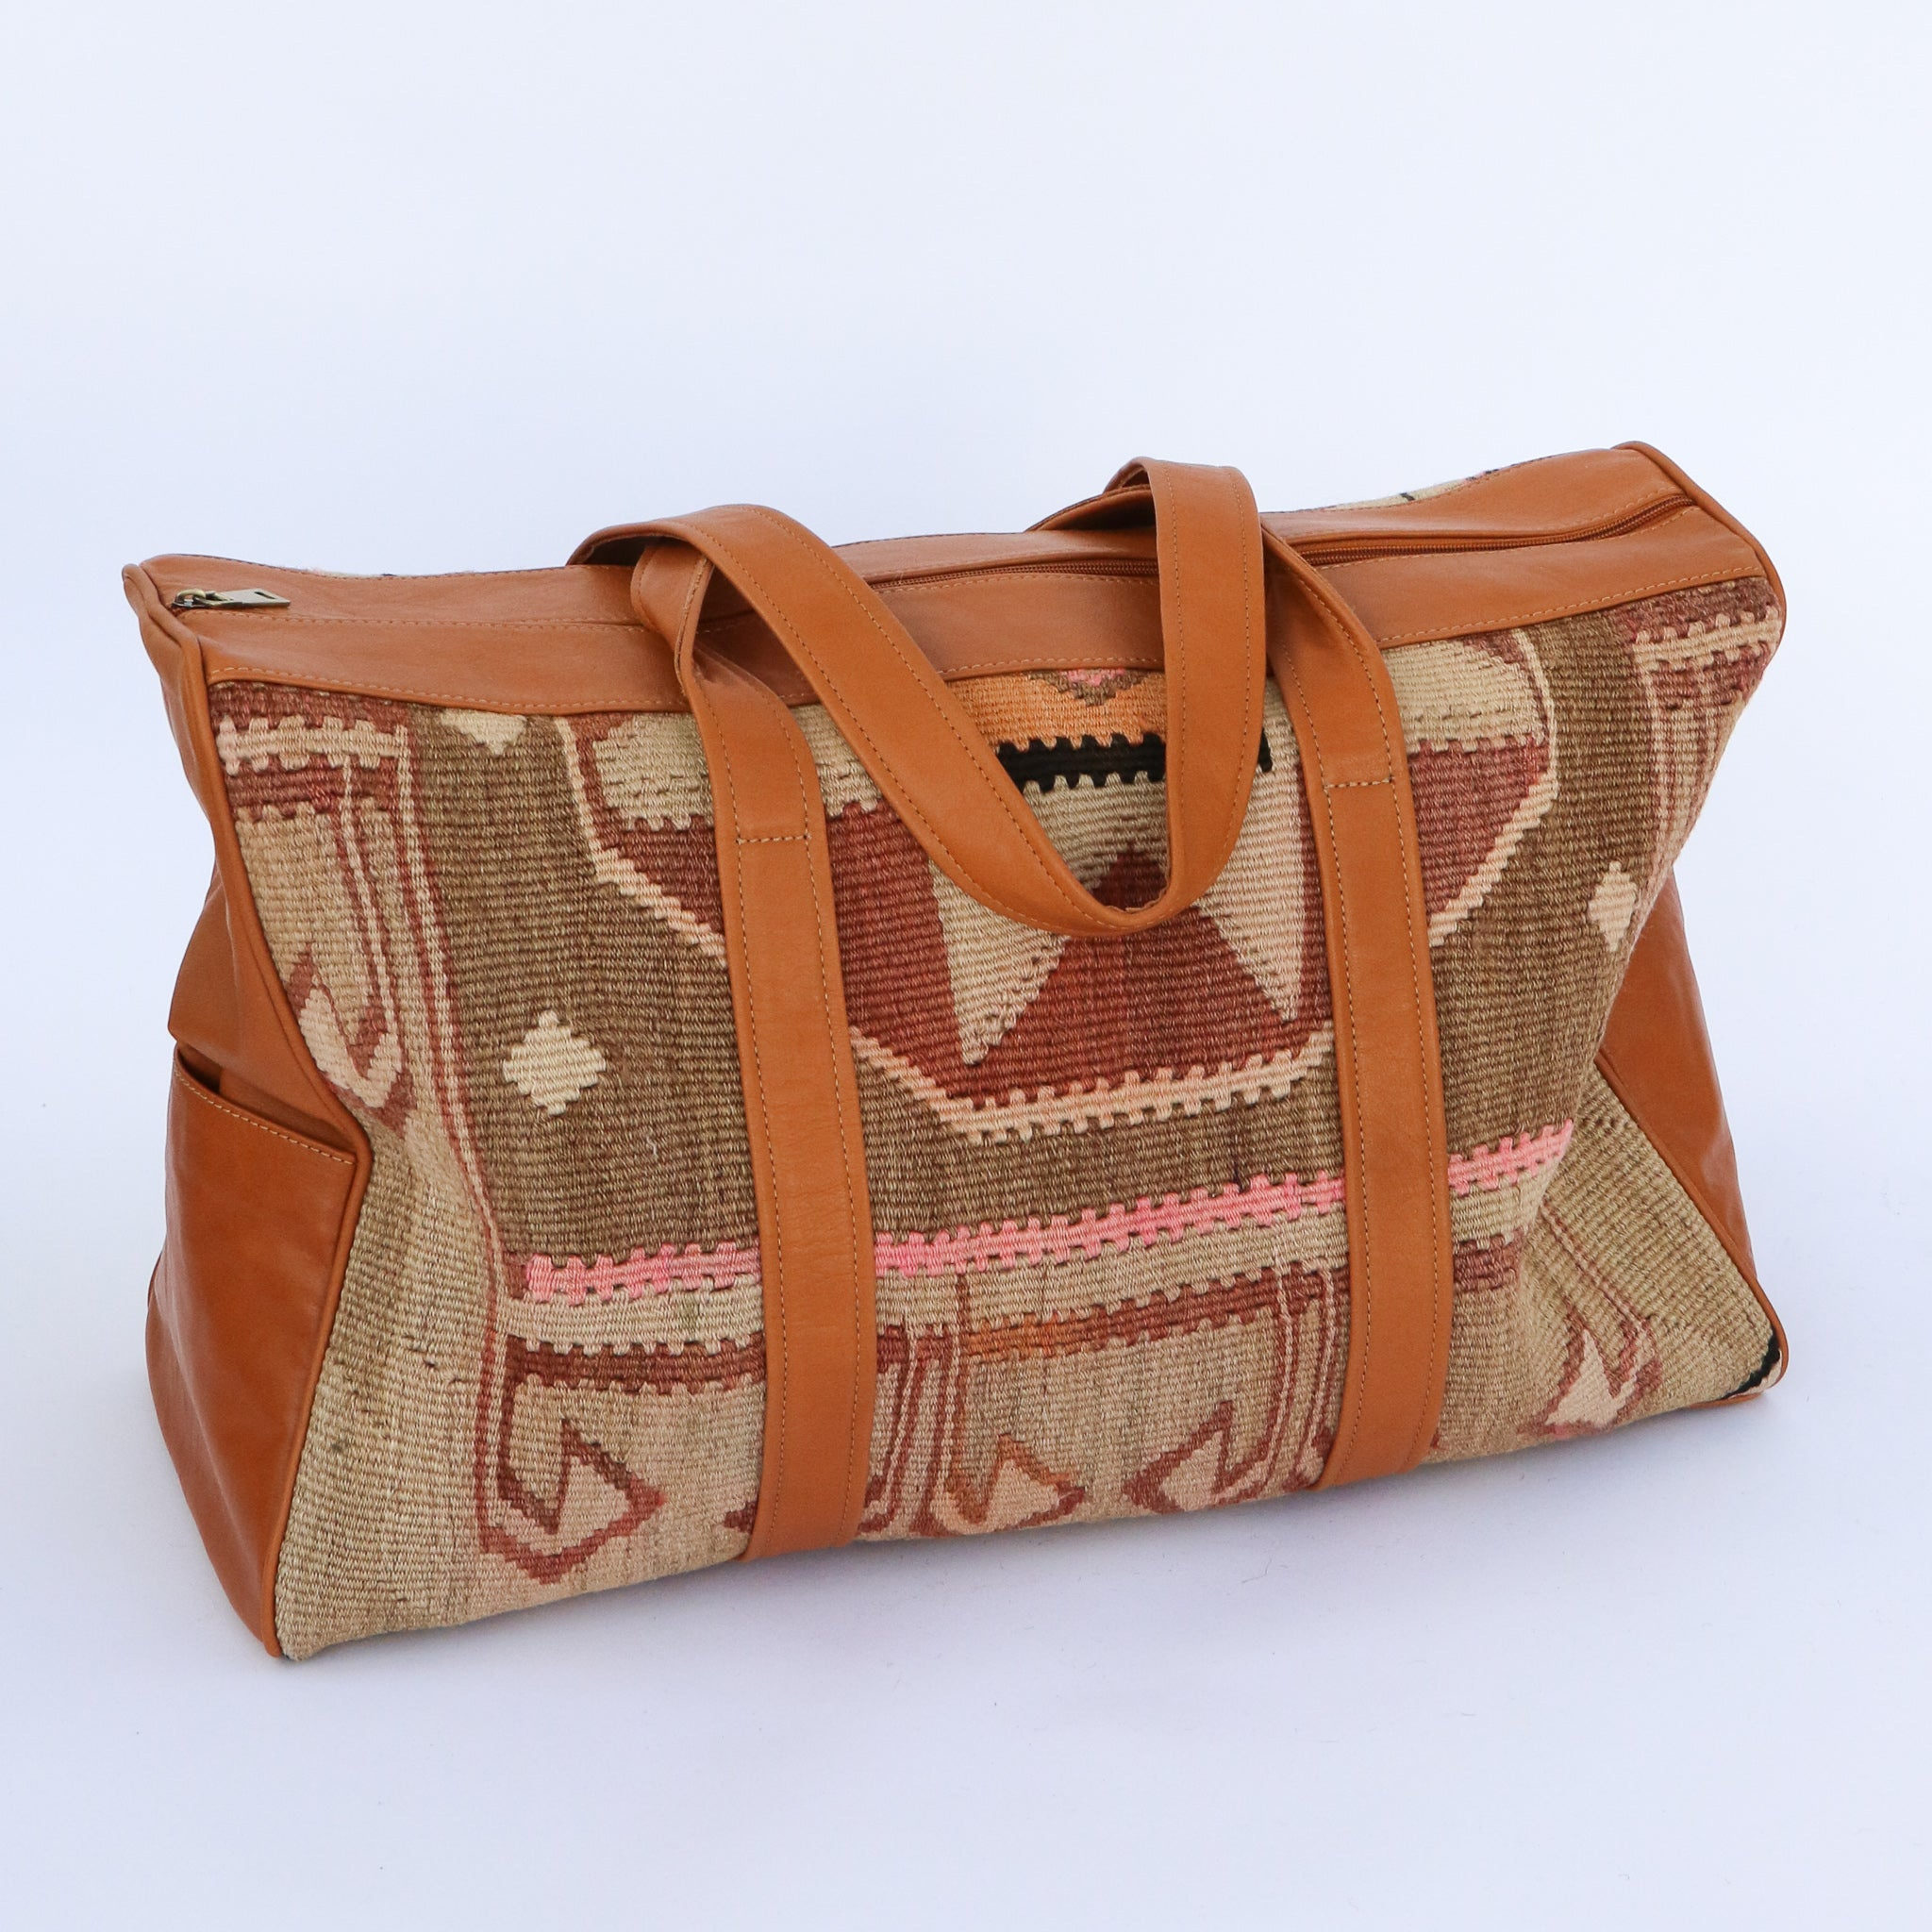 Kilim & Leather Overnight Bag #32 (w/ side pockets)